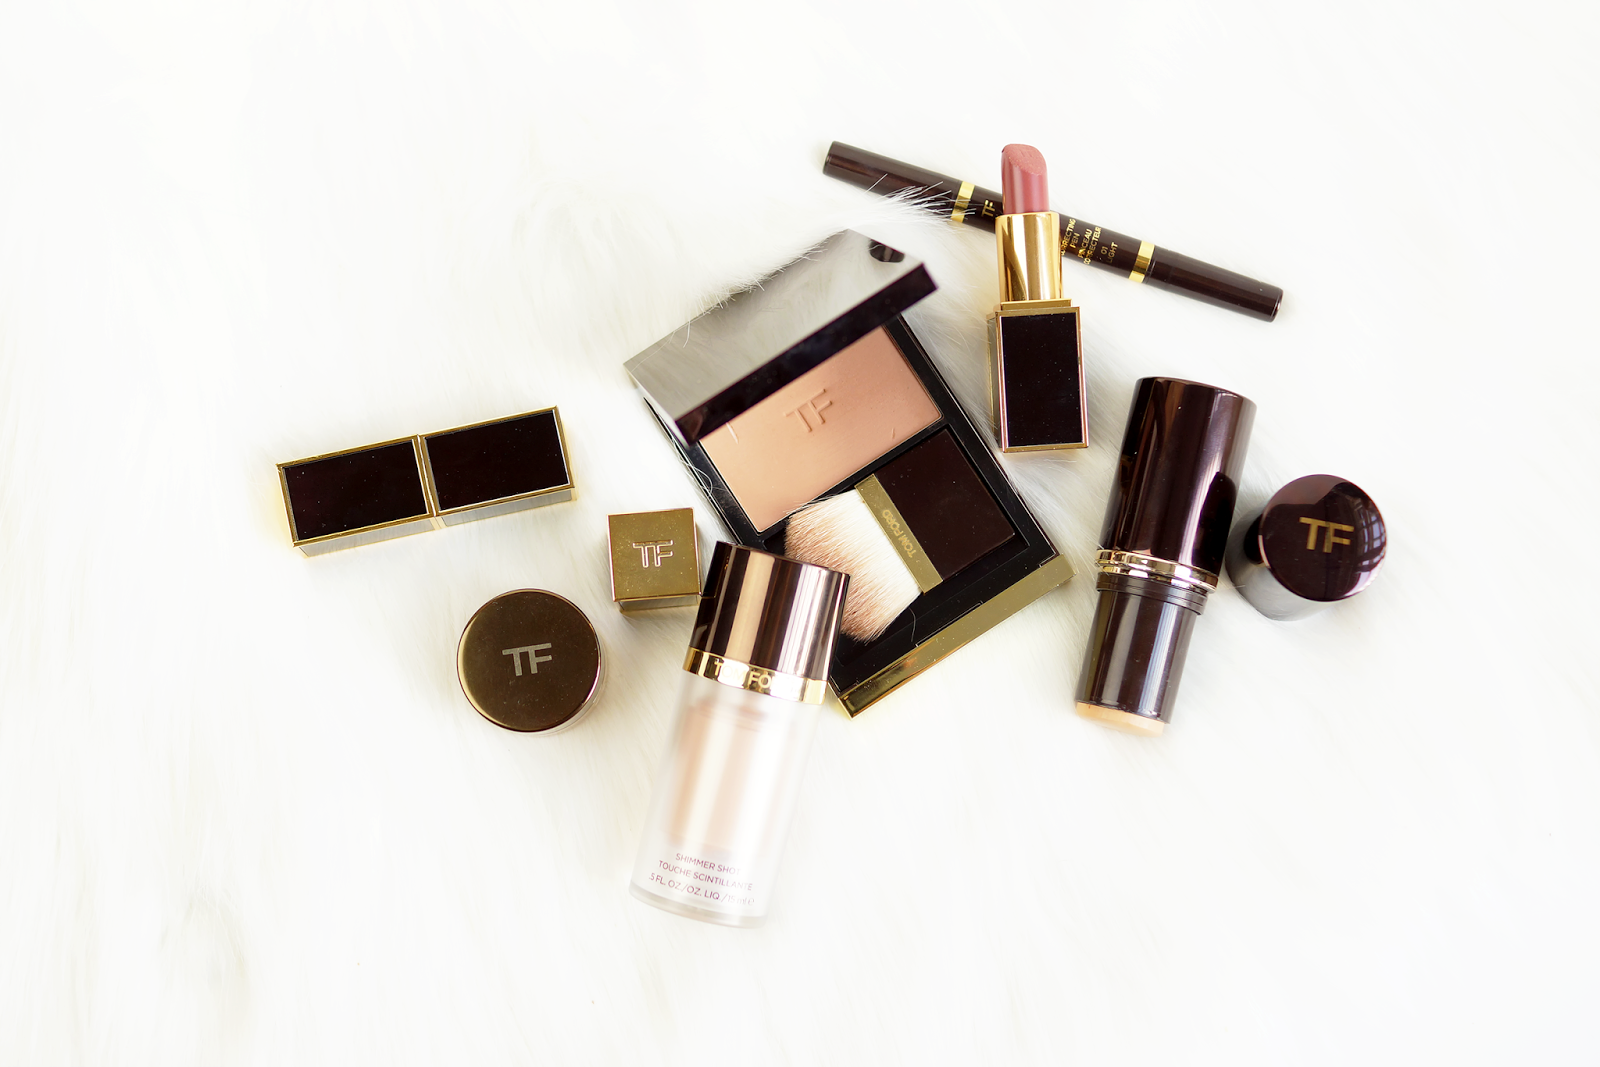 tom-ford-shimmer-shots-review-spin-spin-sugar-barely-there-beauty